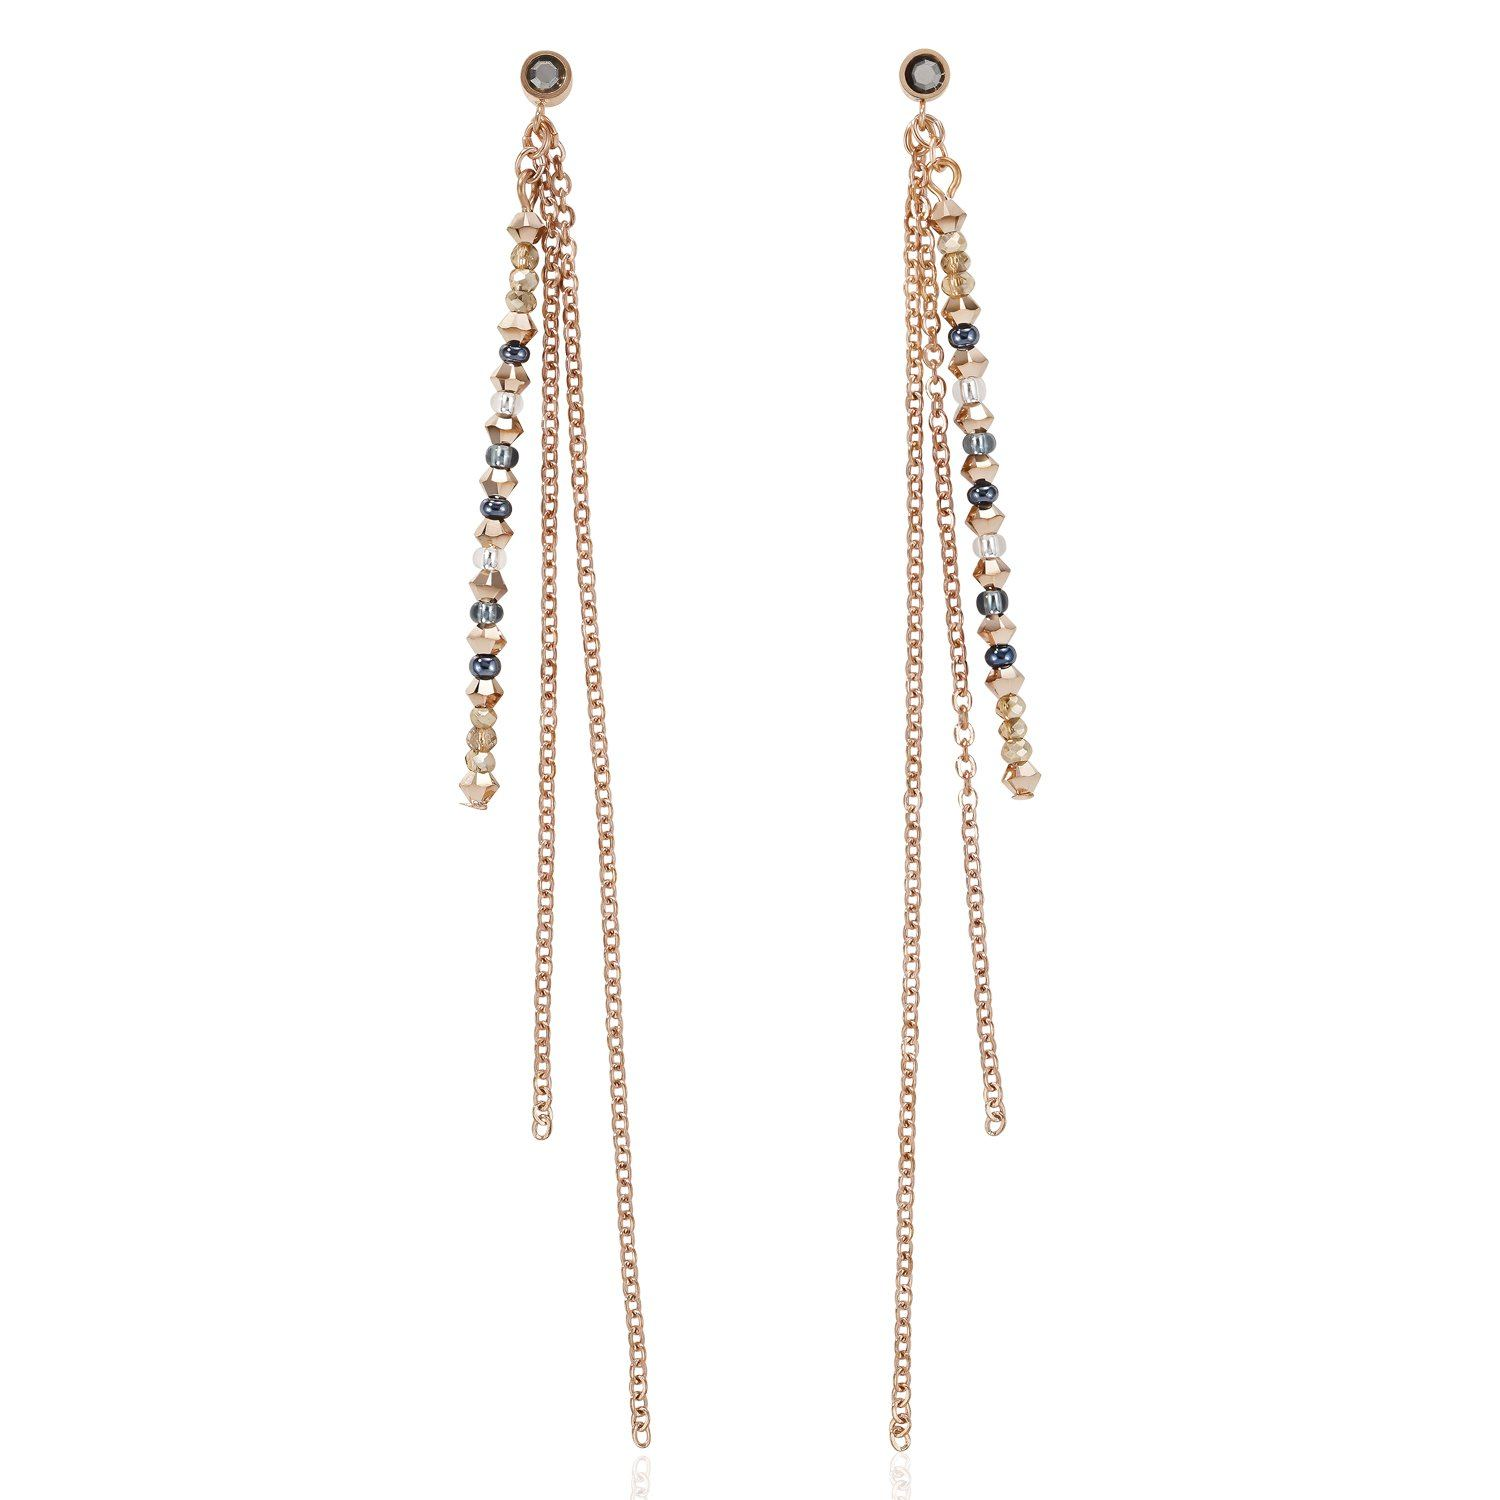 Coeur de Lion Fine Waterfall Earrings Rose Gold & Grey 5040/21-1200 Jewellery Coeur de Lion